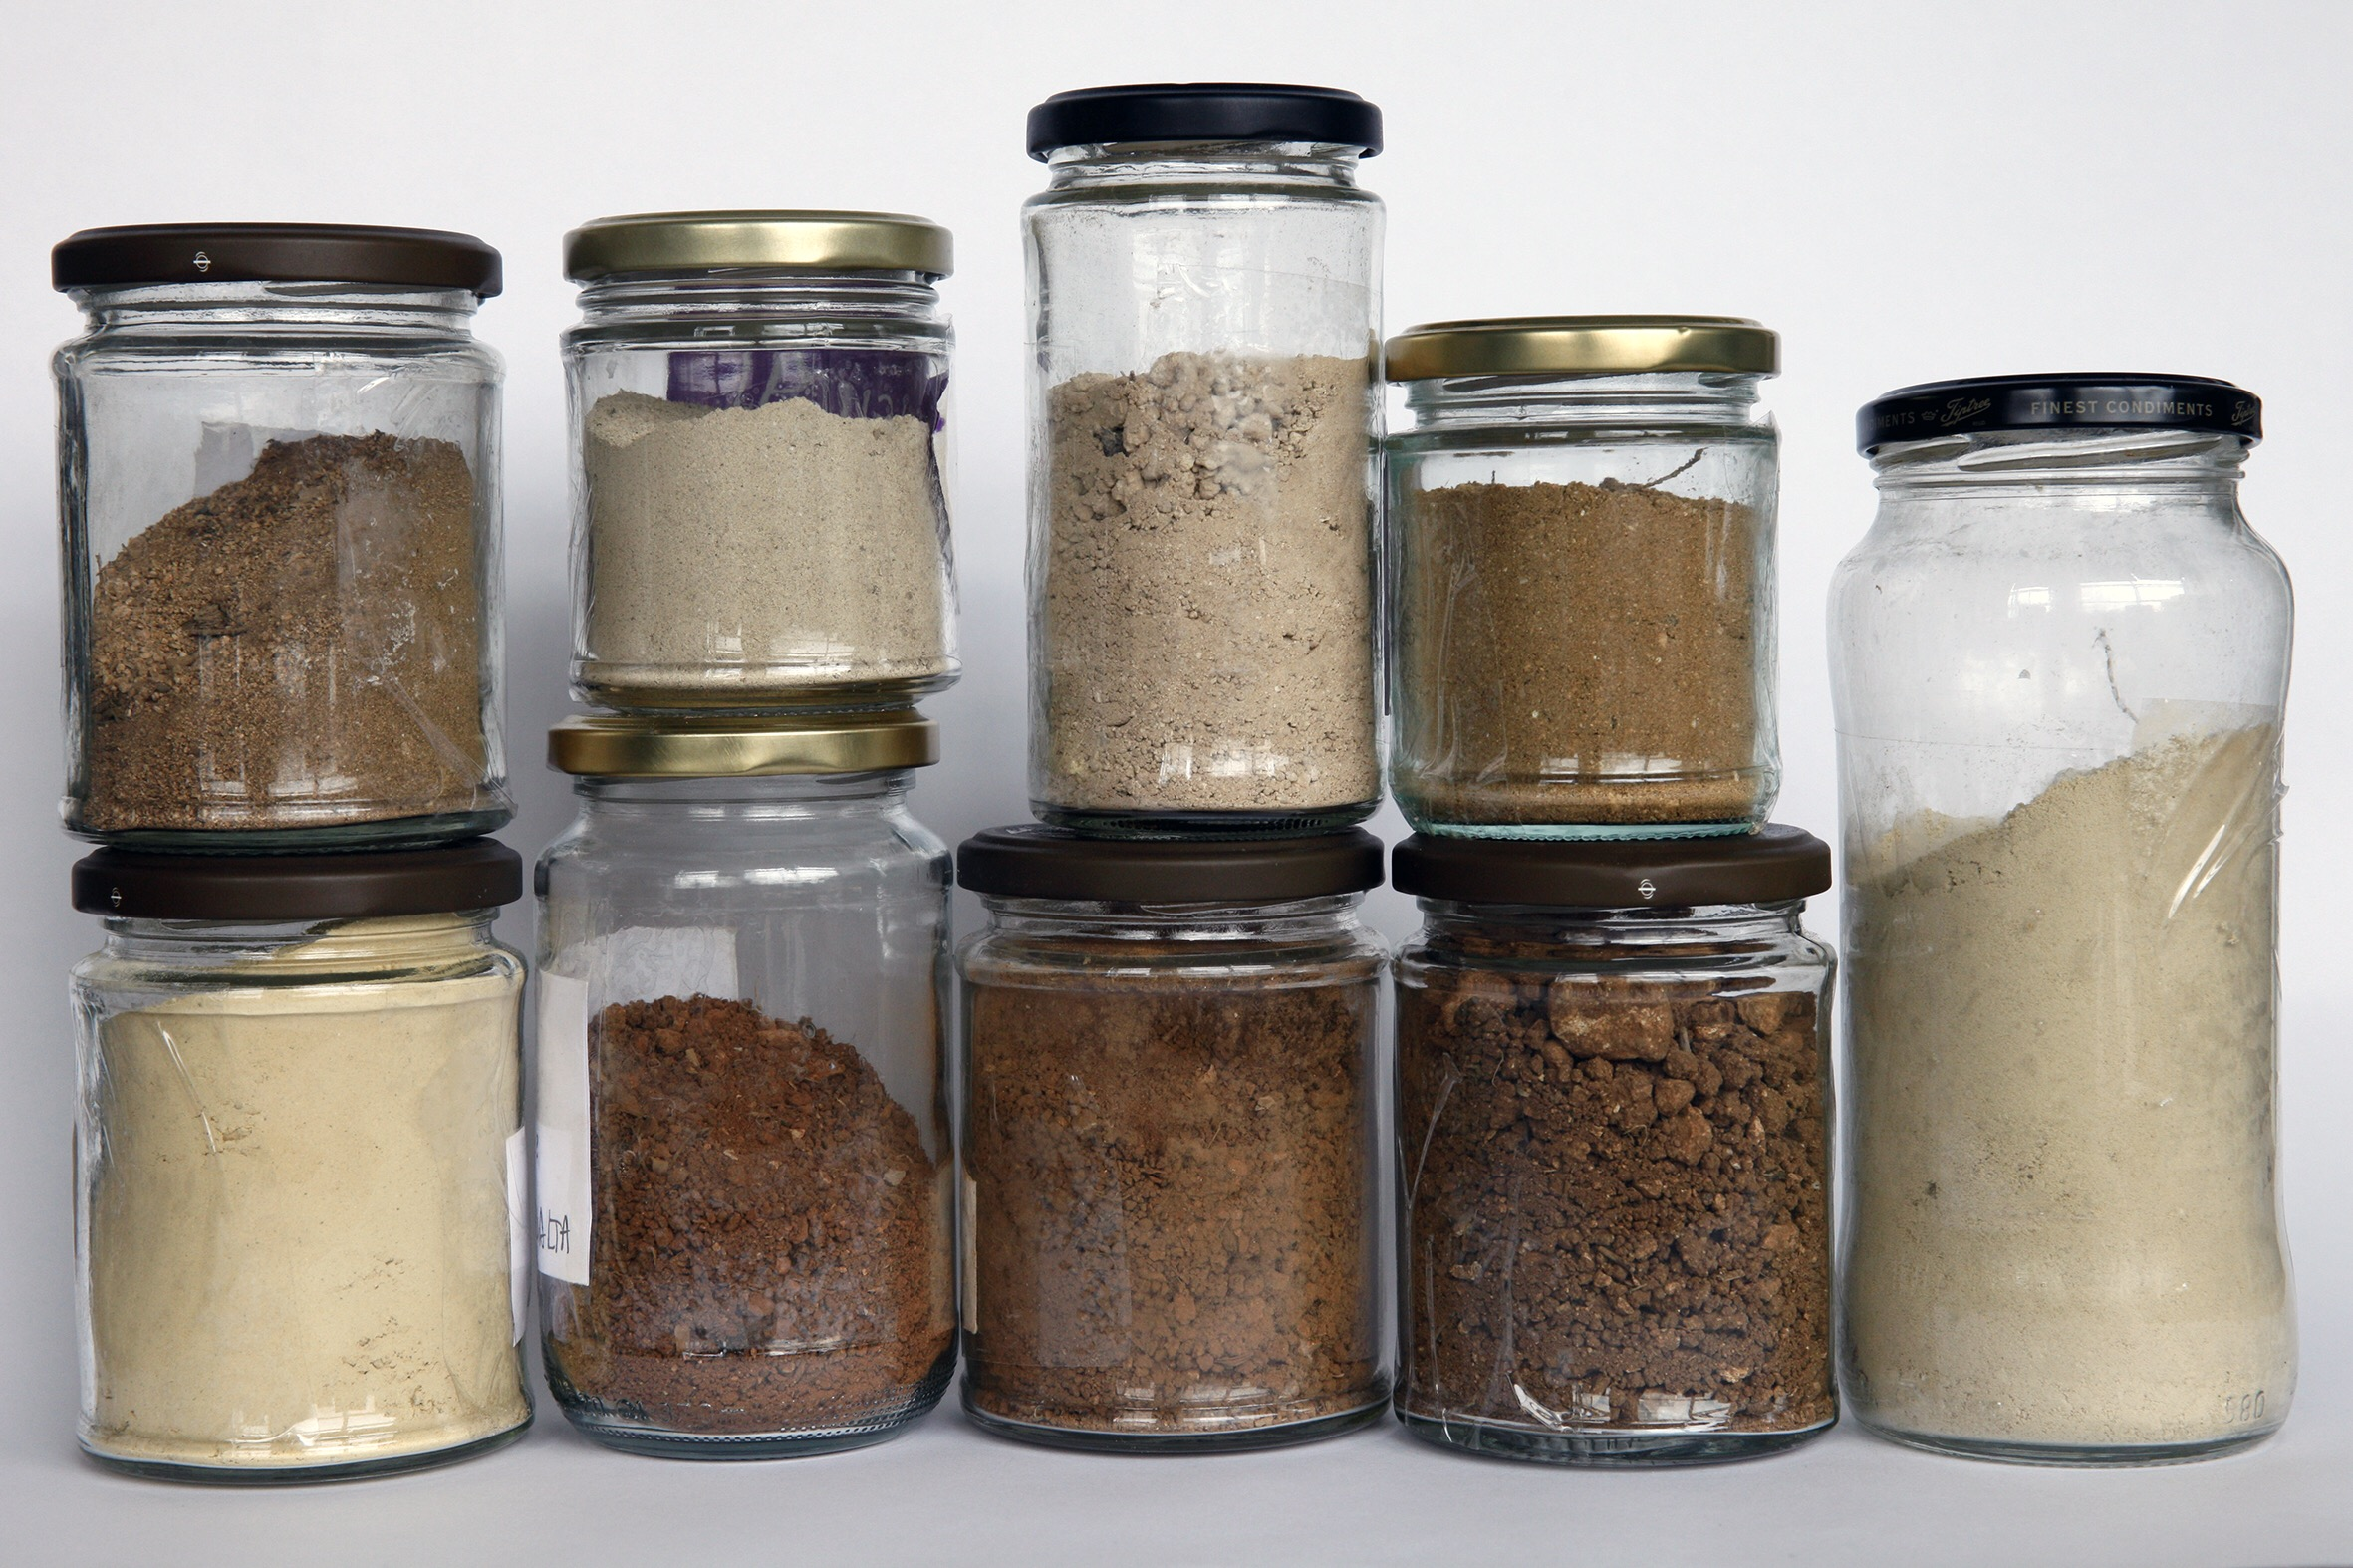 Earth collected from each location I make a photograph in will be ground into paint pigment.